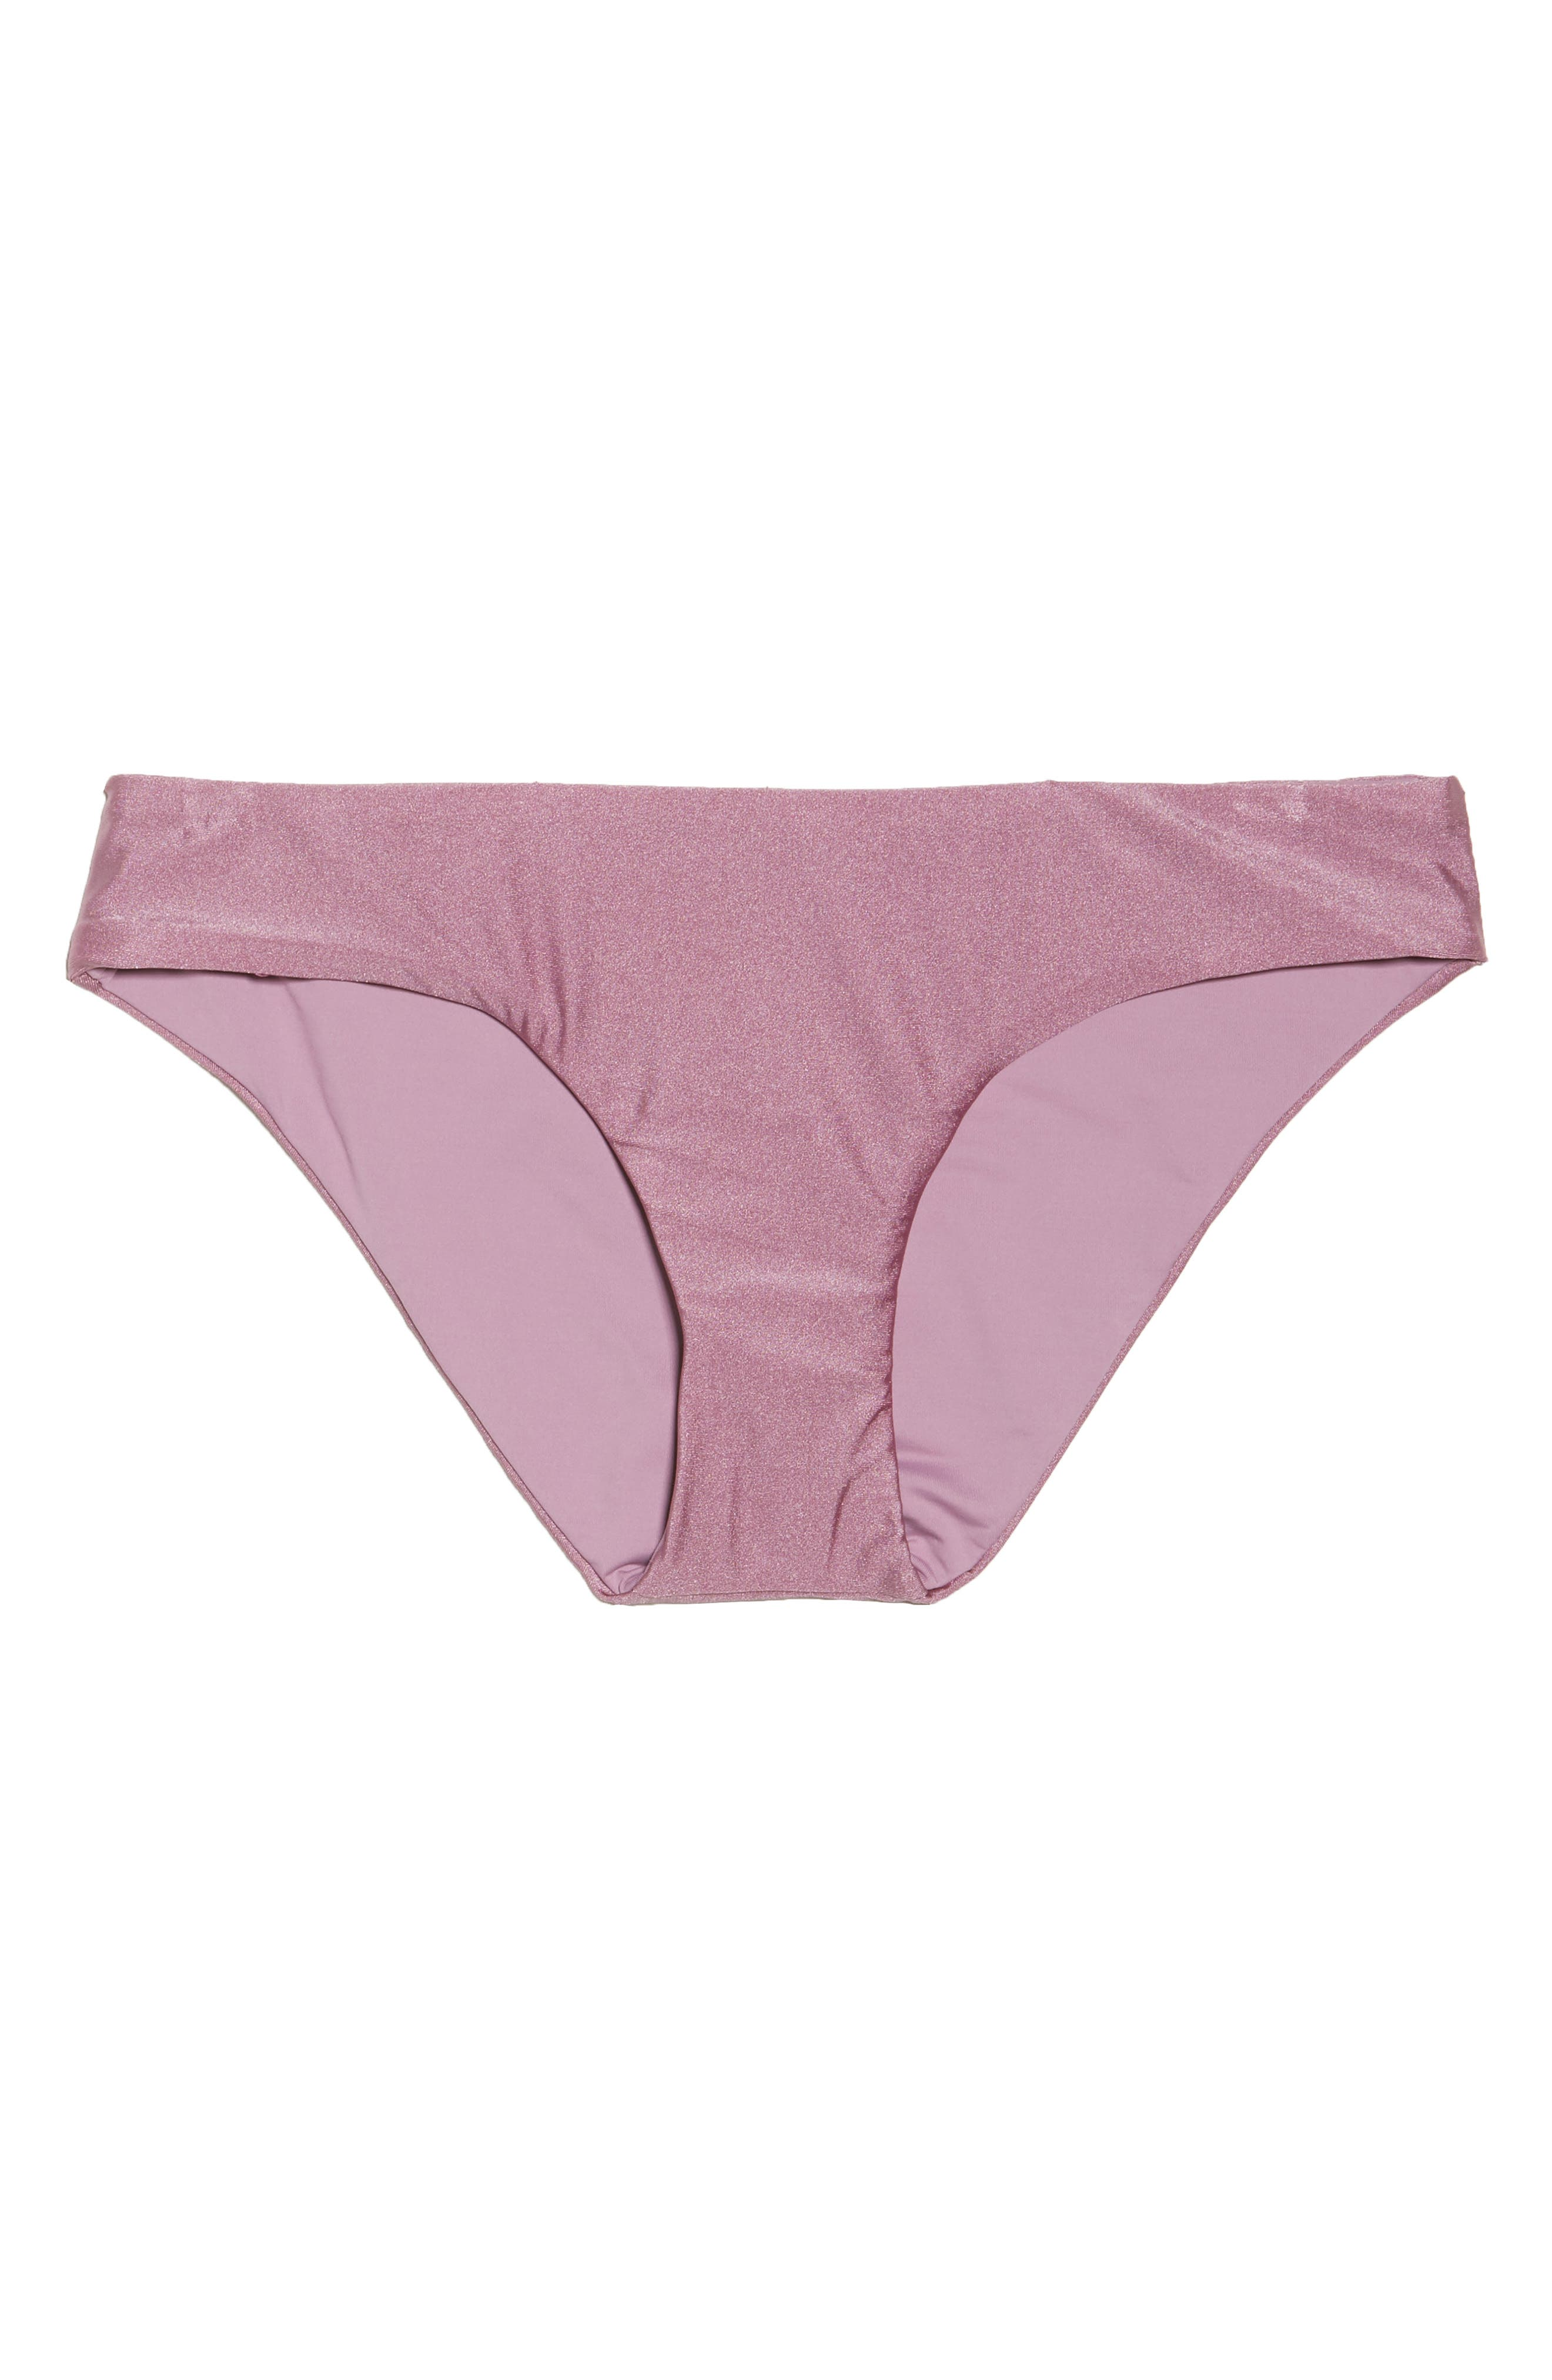 Ballerina Bikini Bottoms,                             Alternate thumbnail 6, color,                             500